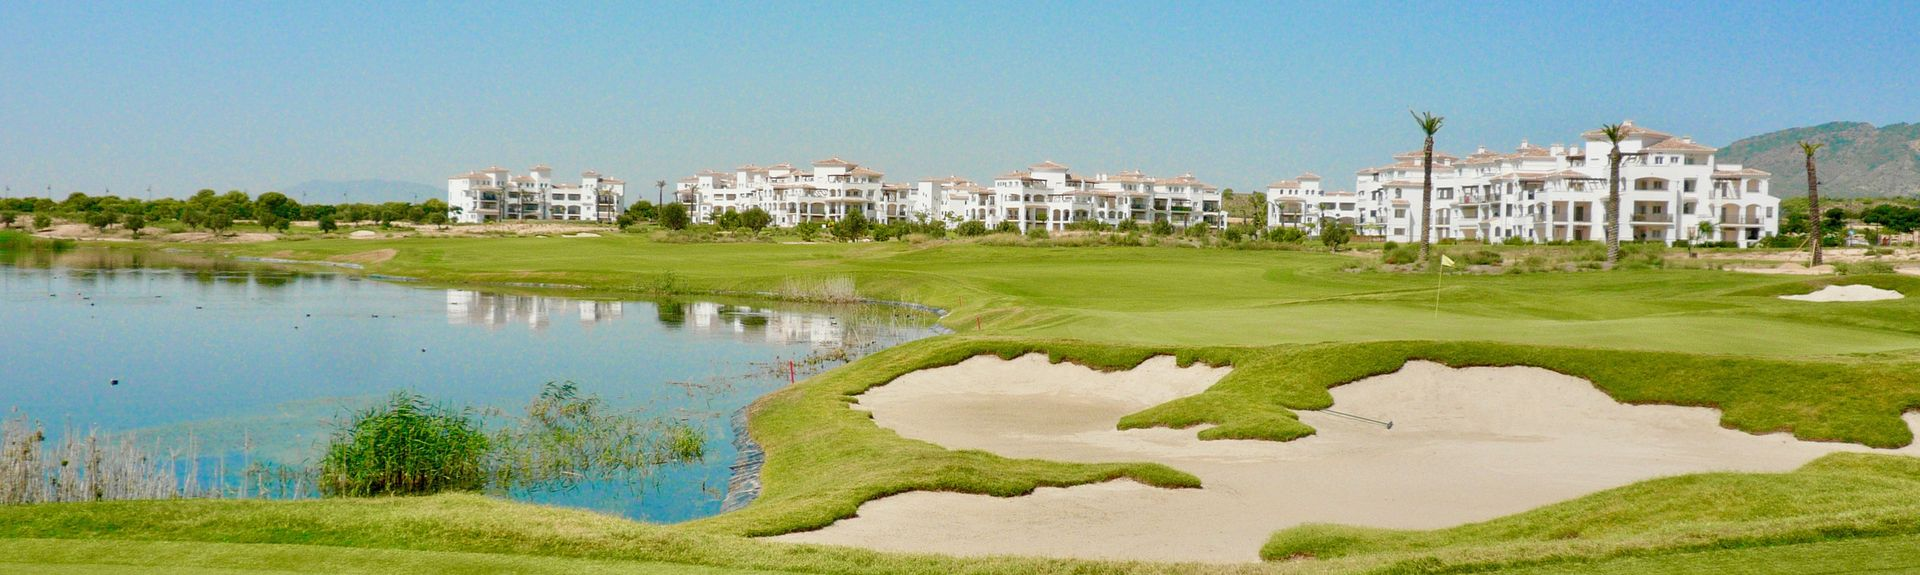 Hacienda Riquelme Golf Resort, Sucina, Murcia, Spain